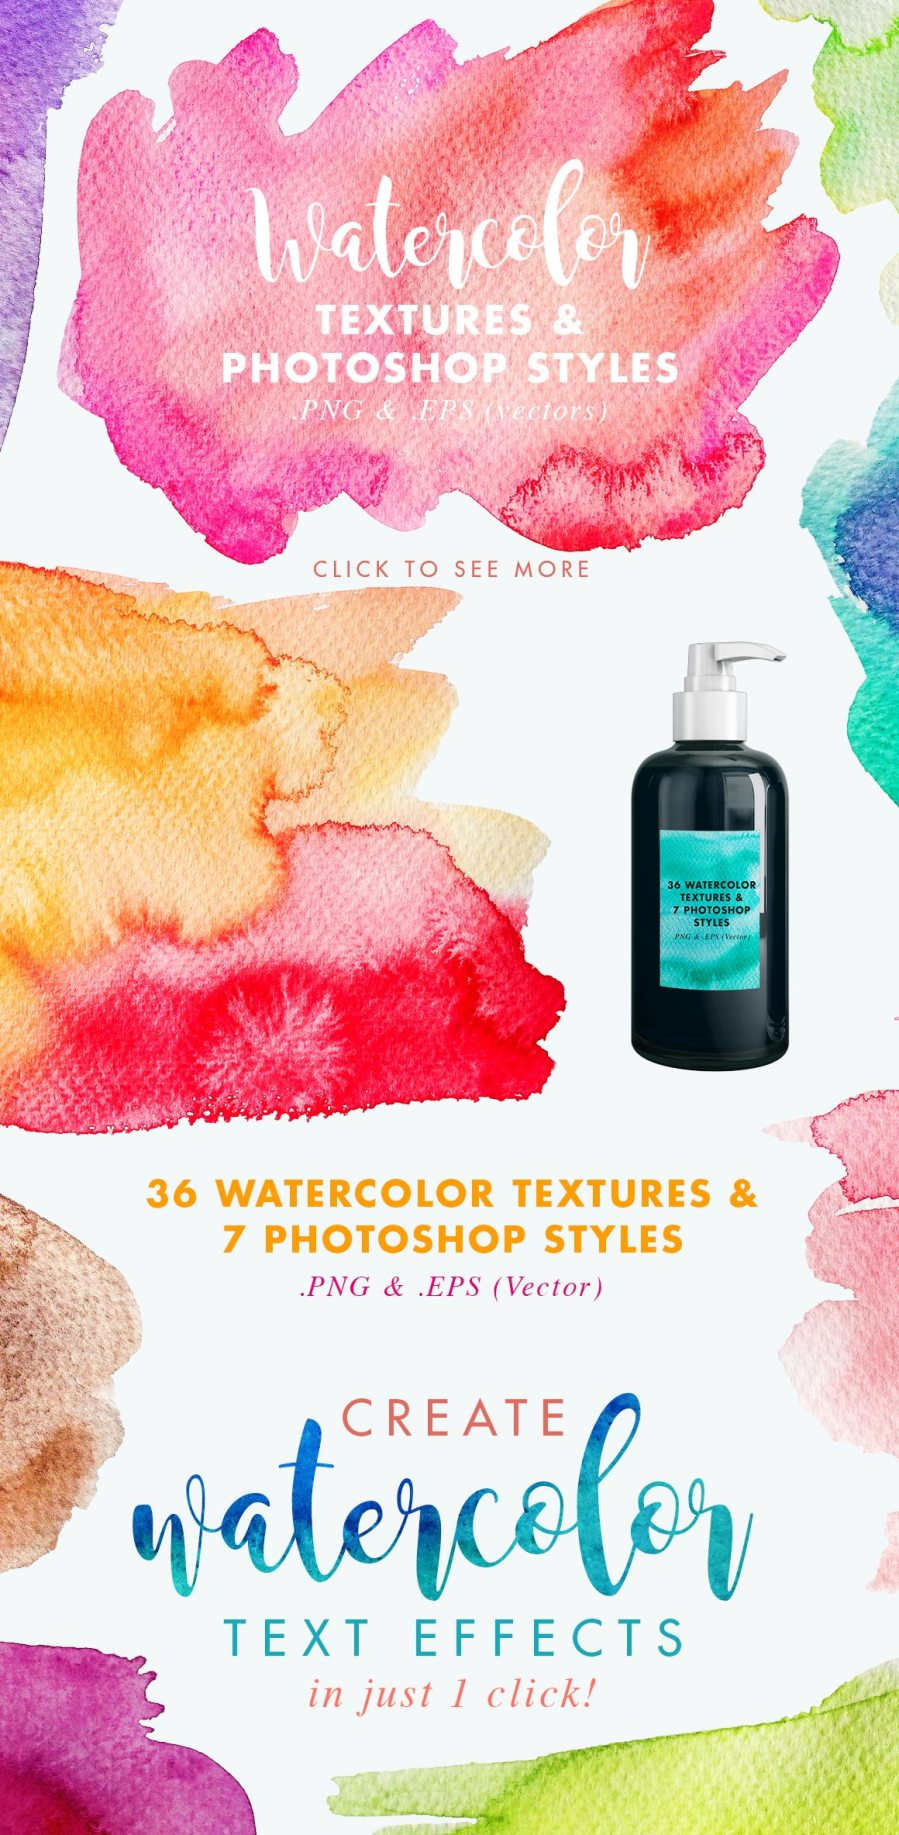 How to create a watercolor text effect in Photoshop: tutorial + watercolor textures download